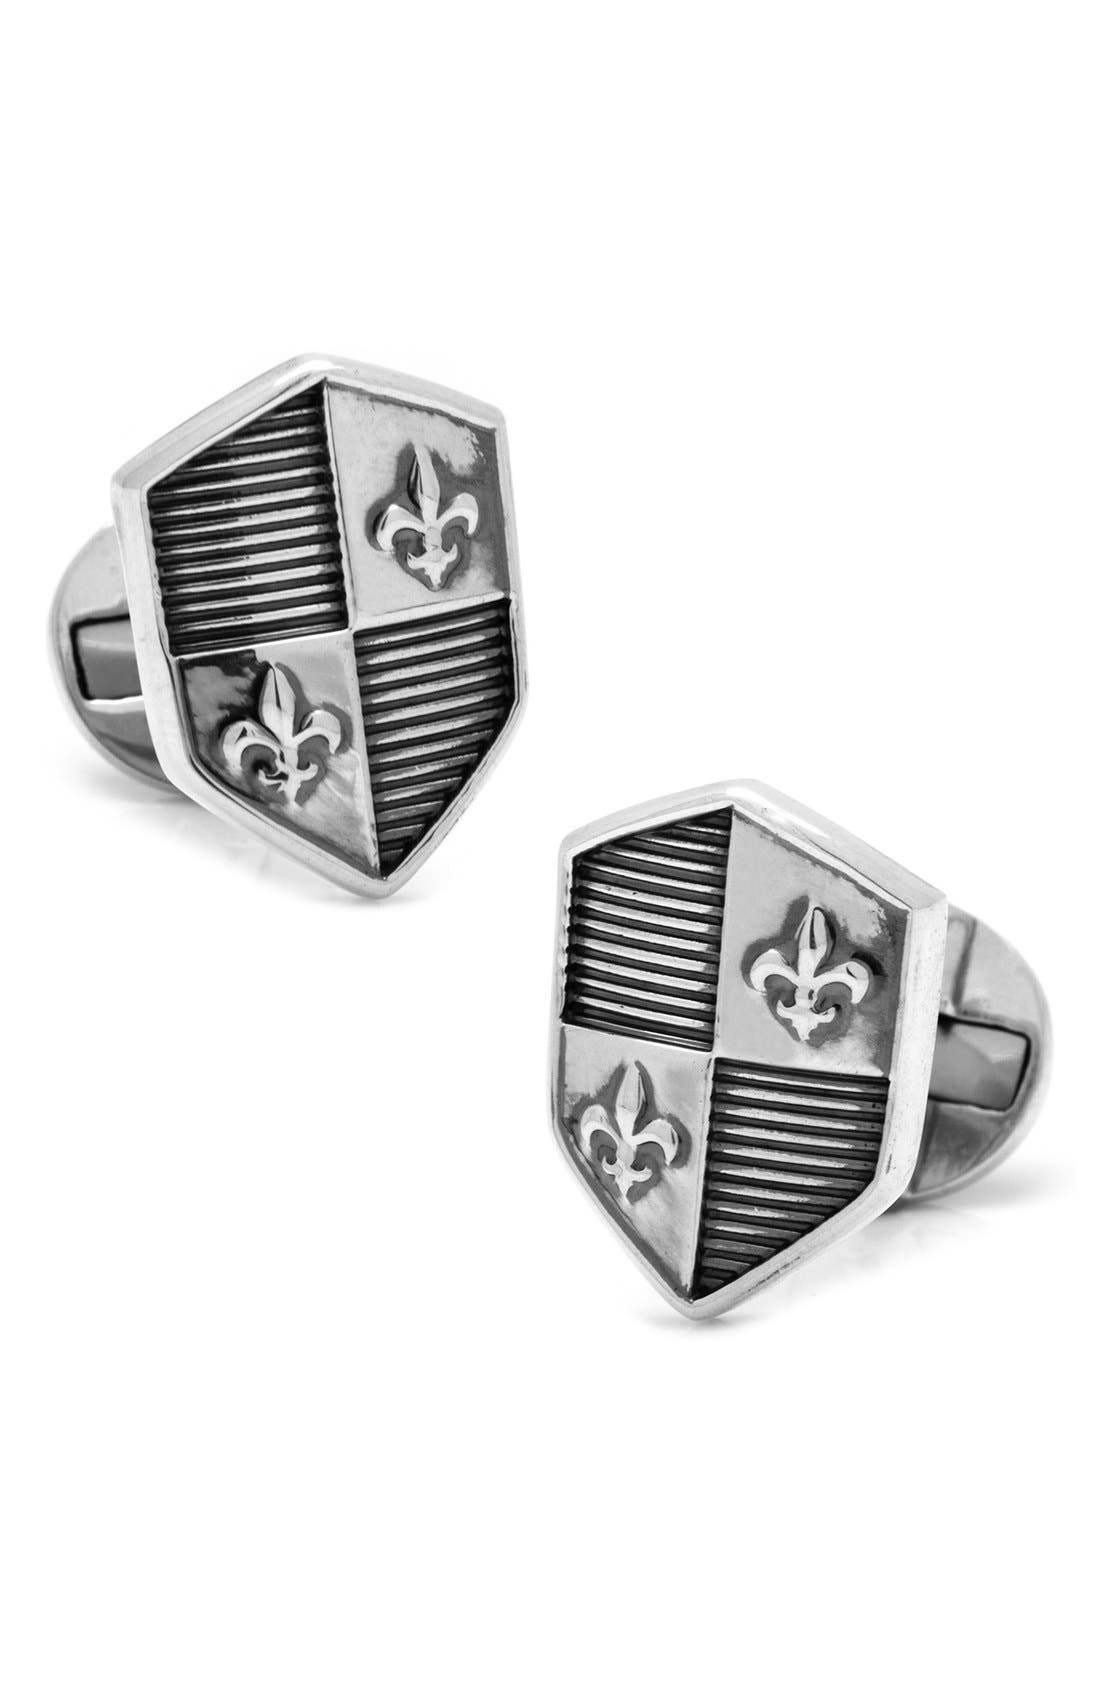 Alternate Image 1 Selected - Cuffilnks, Inc. Shield Cuff Links